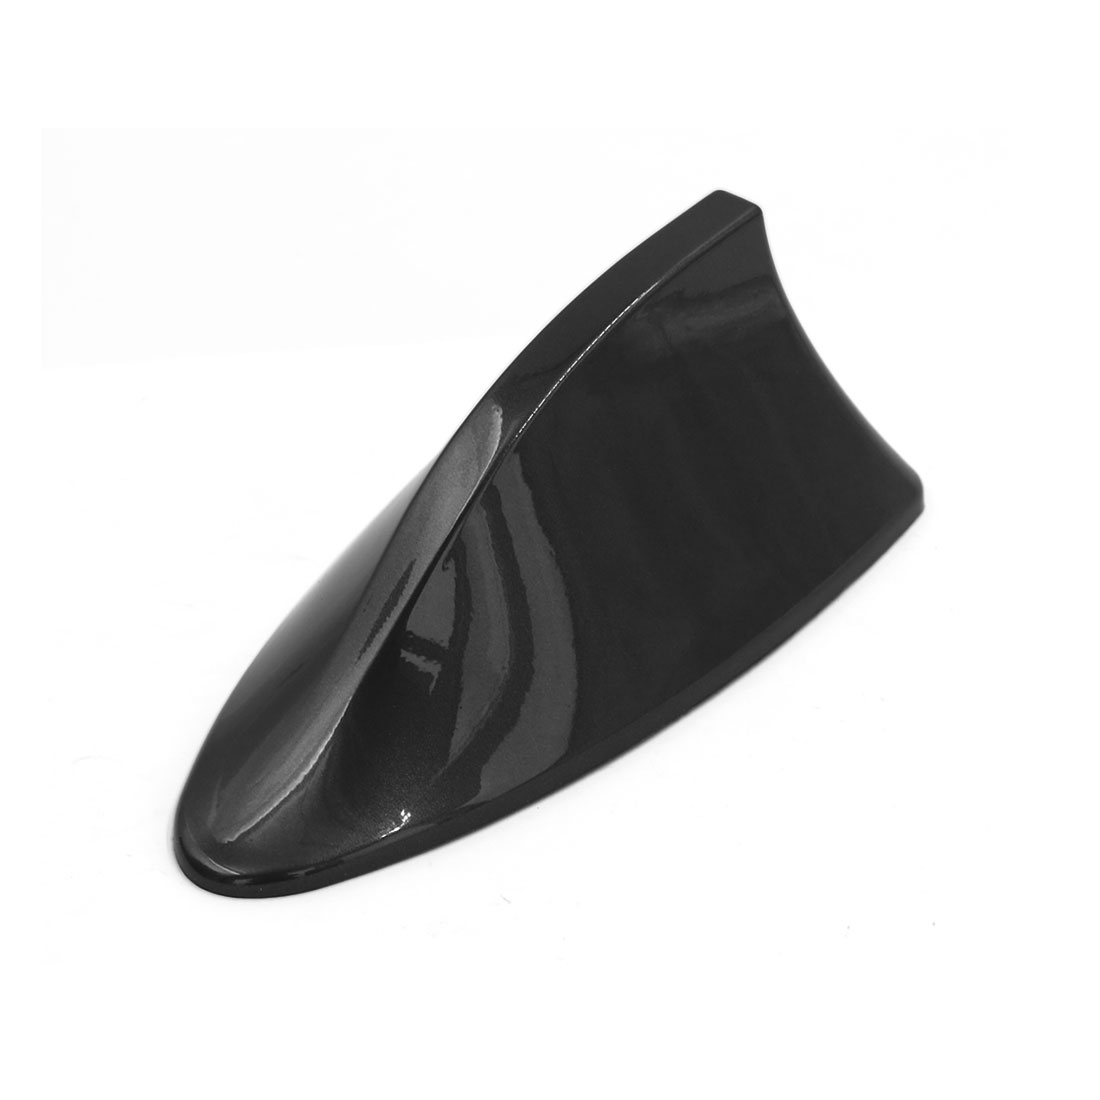 6.7inch Long Shark Fin Design AM/FM Aerial Radio Signal Antenna for BMW - image 3 of 3